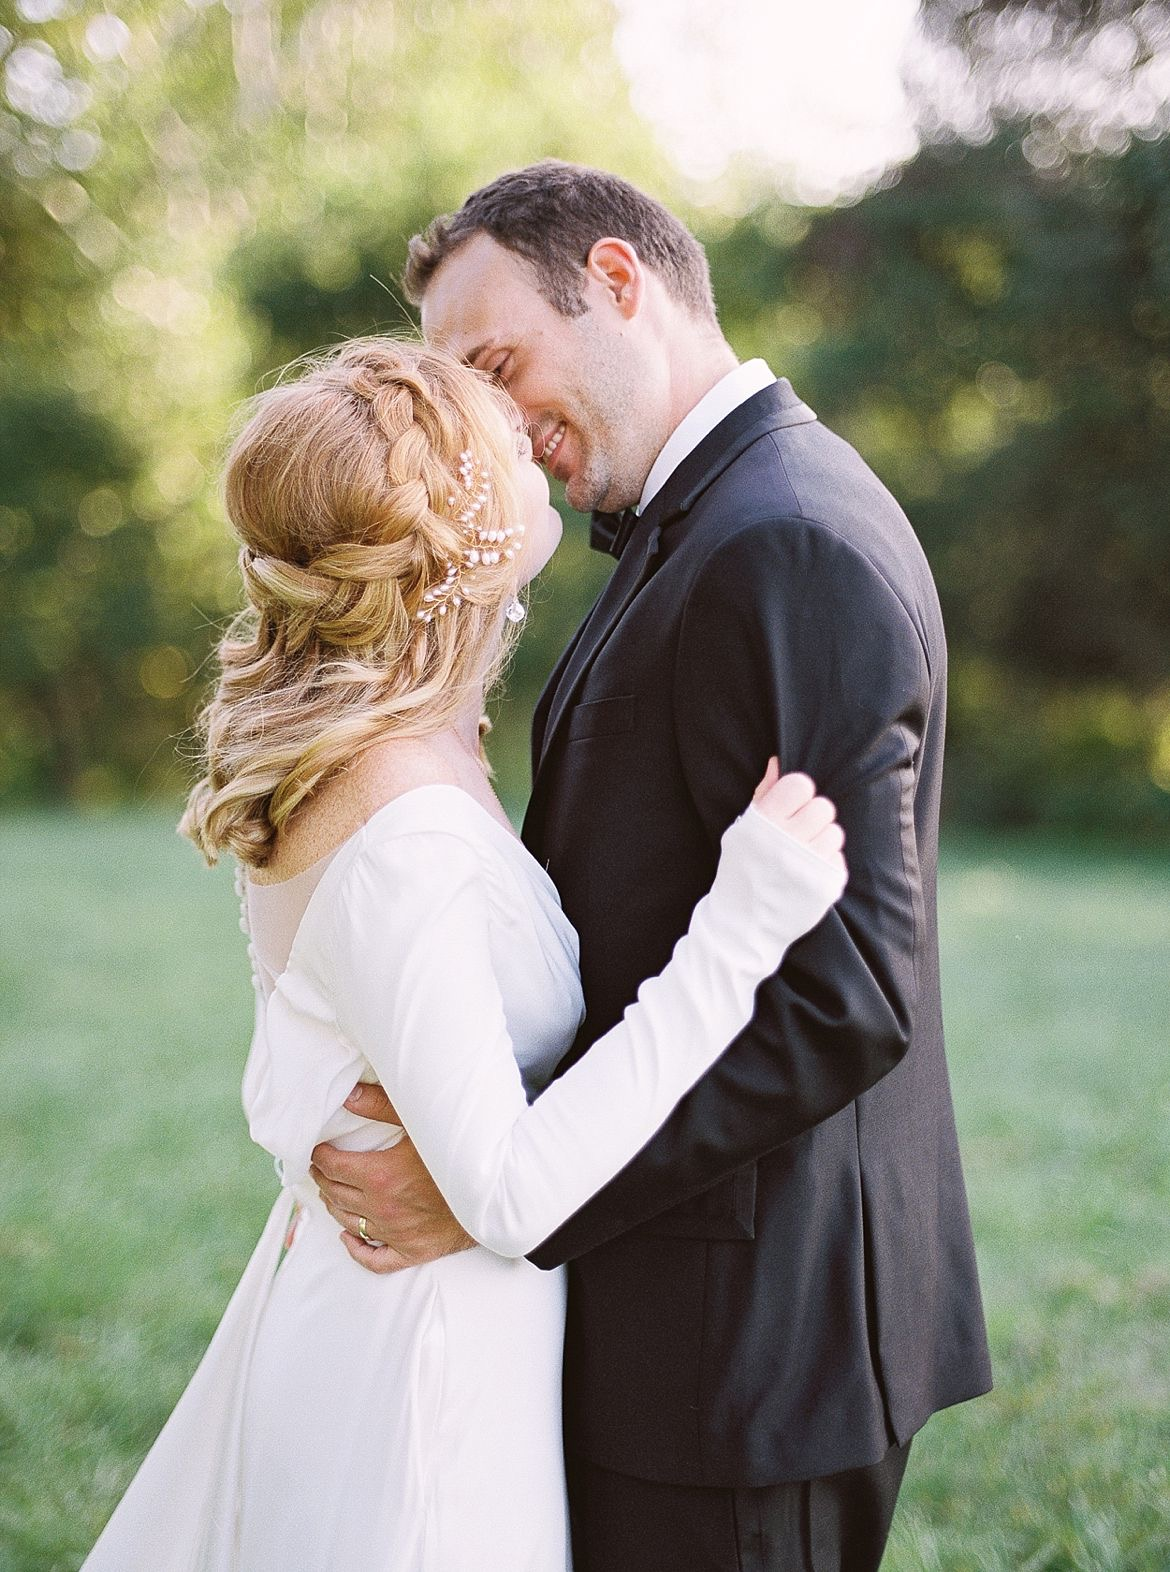 Old-World Elopement Inspiration